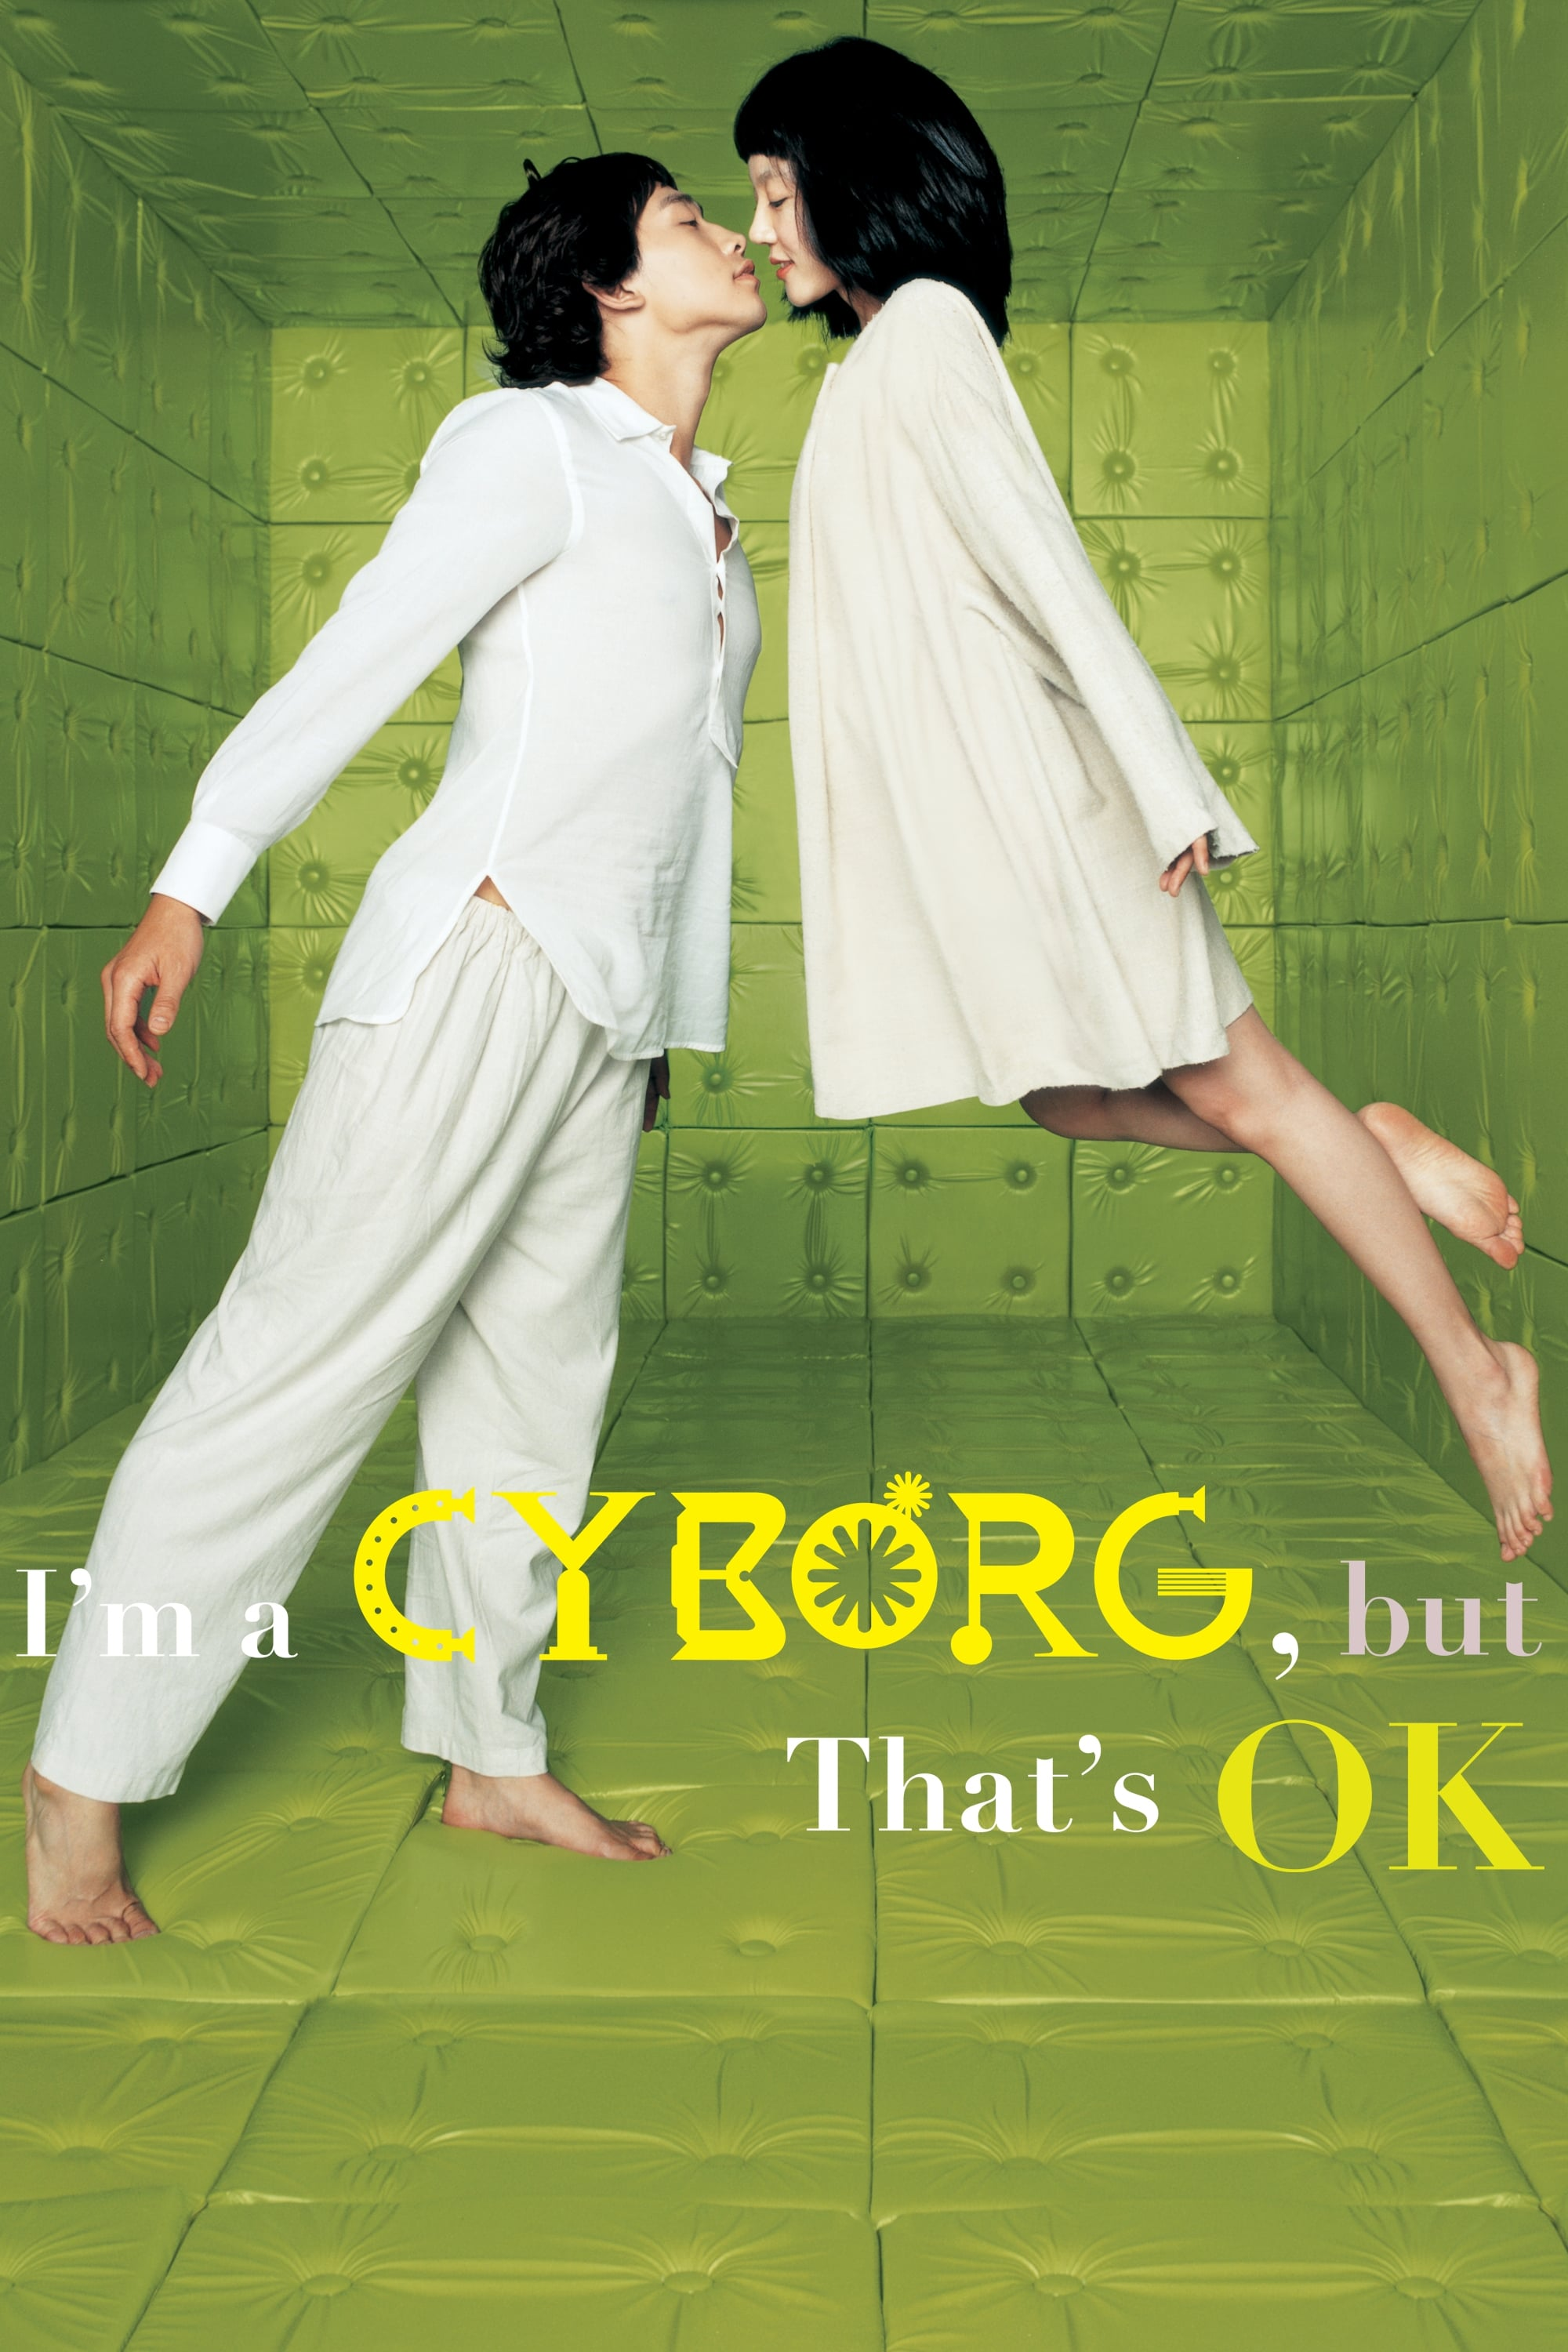 watch I'm a Cyborg, But That's OK 2006 online free